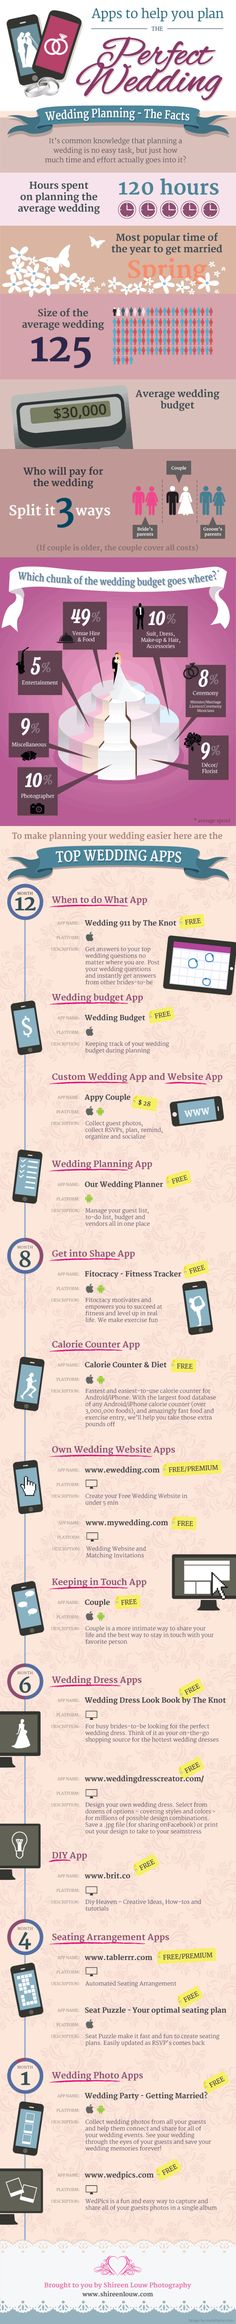 Apps To Help You Plan The Perfect Wedding[INFOGRAPHIC]